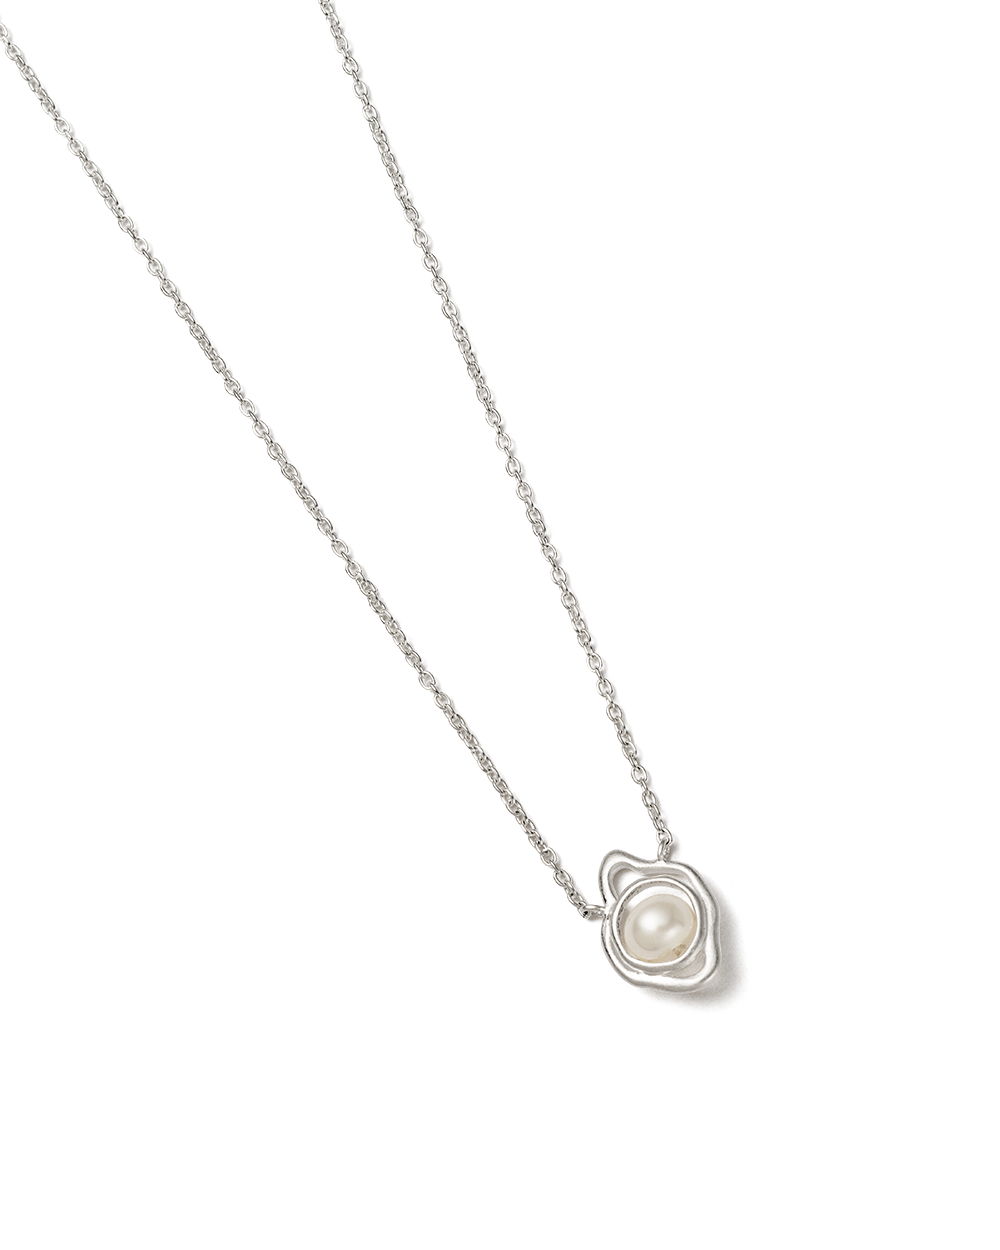 EBB AND FLOW NECKLACE (STERLING SILVER) - SIDE IMAGE